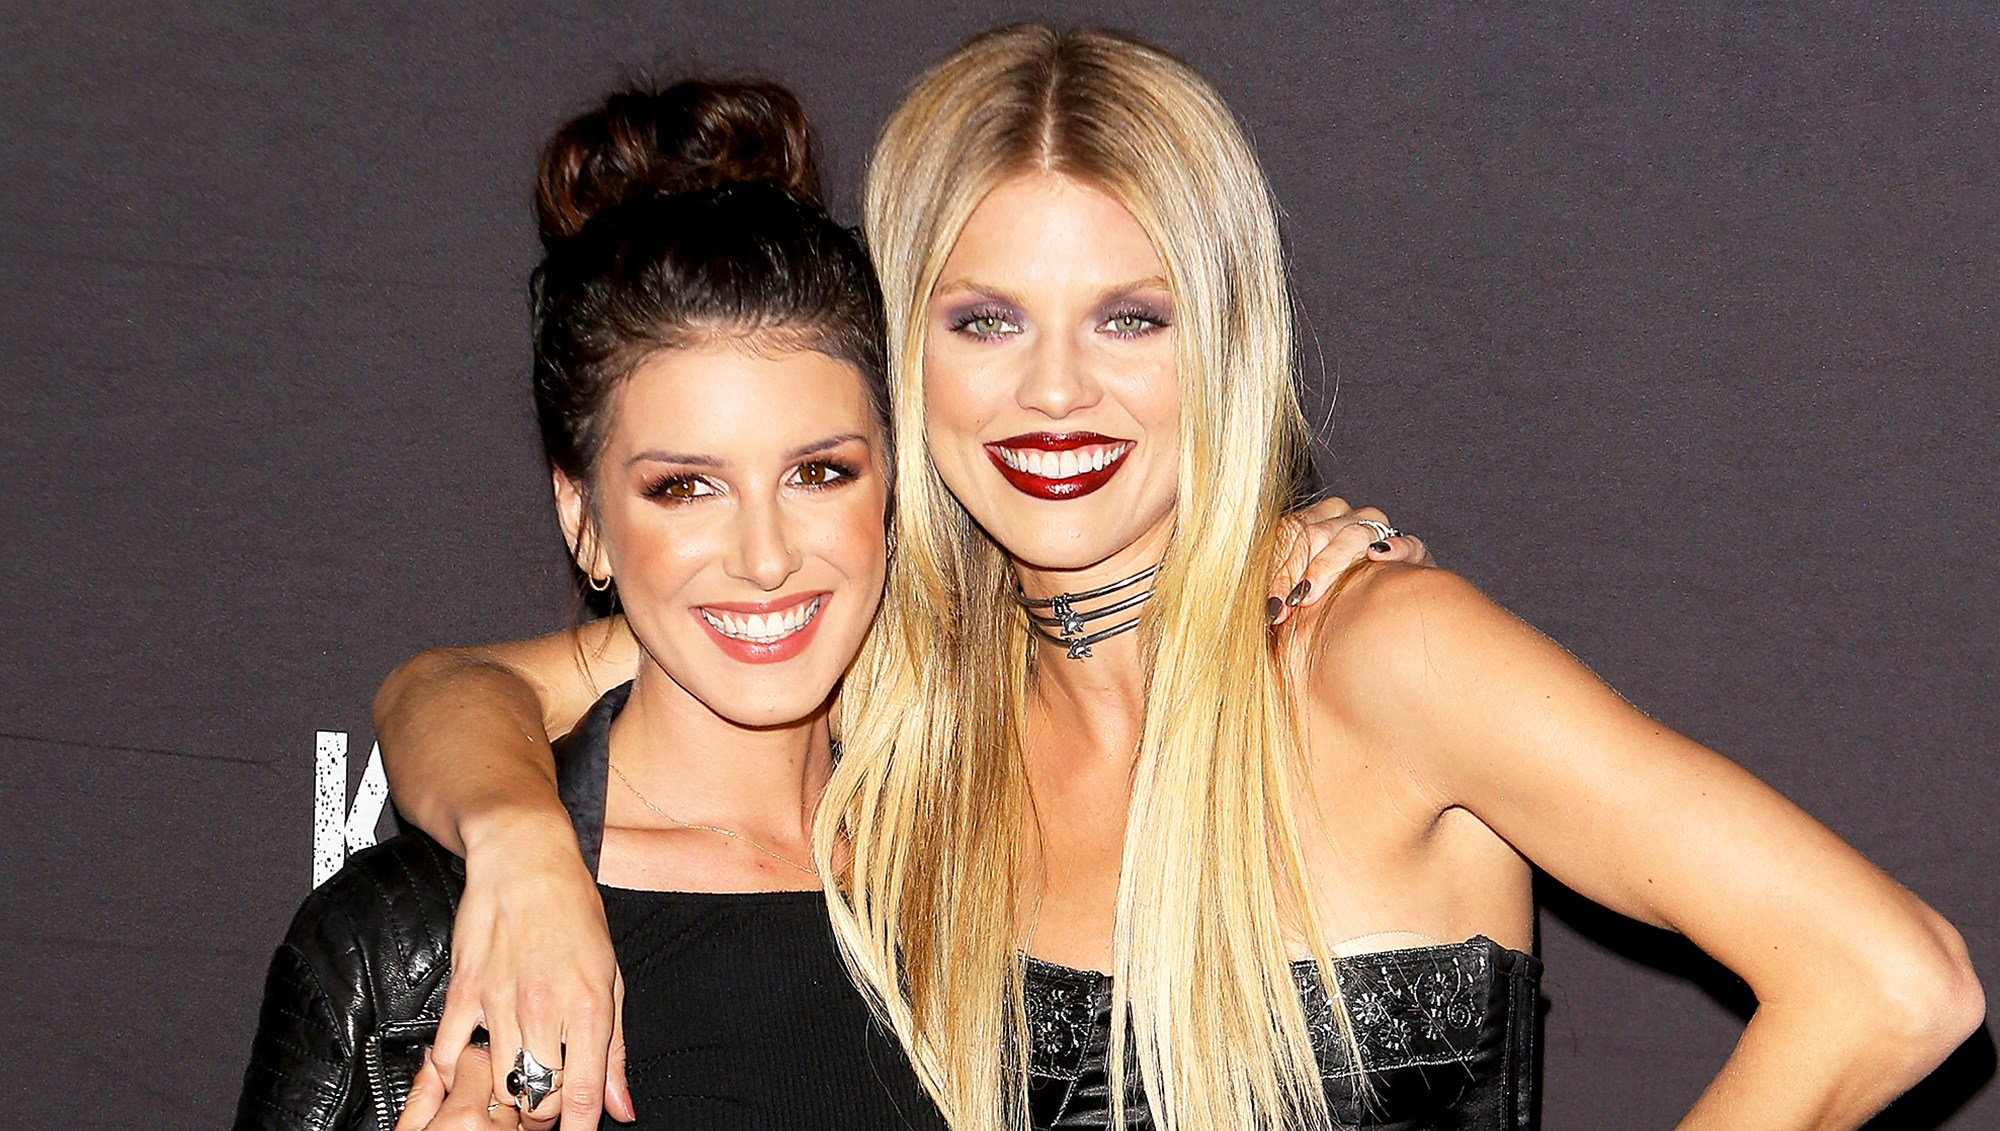 Shenae Grimes and AnnaLynne McCord arrive at the Knott's Scary Farm Black Carpet 2016 Event held at Knott's Berry Farm in Buena Park, California.